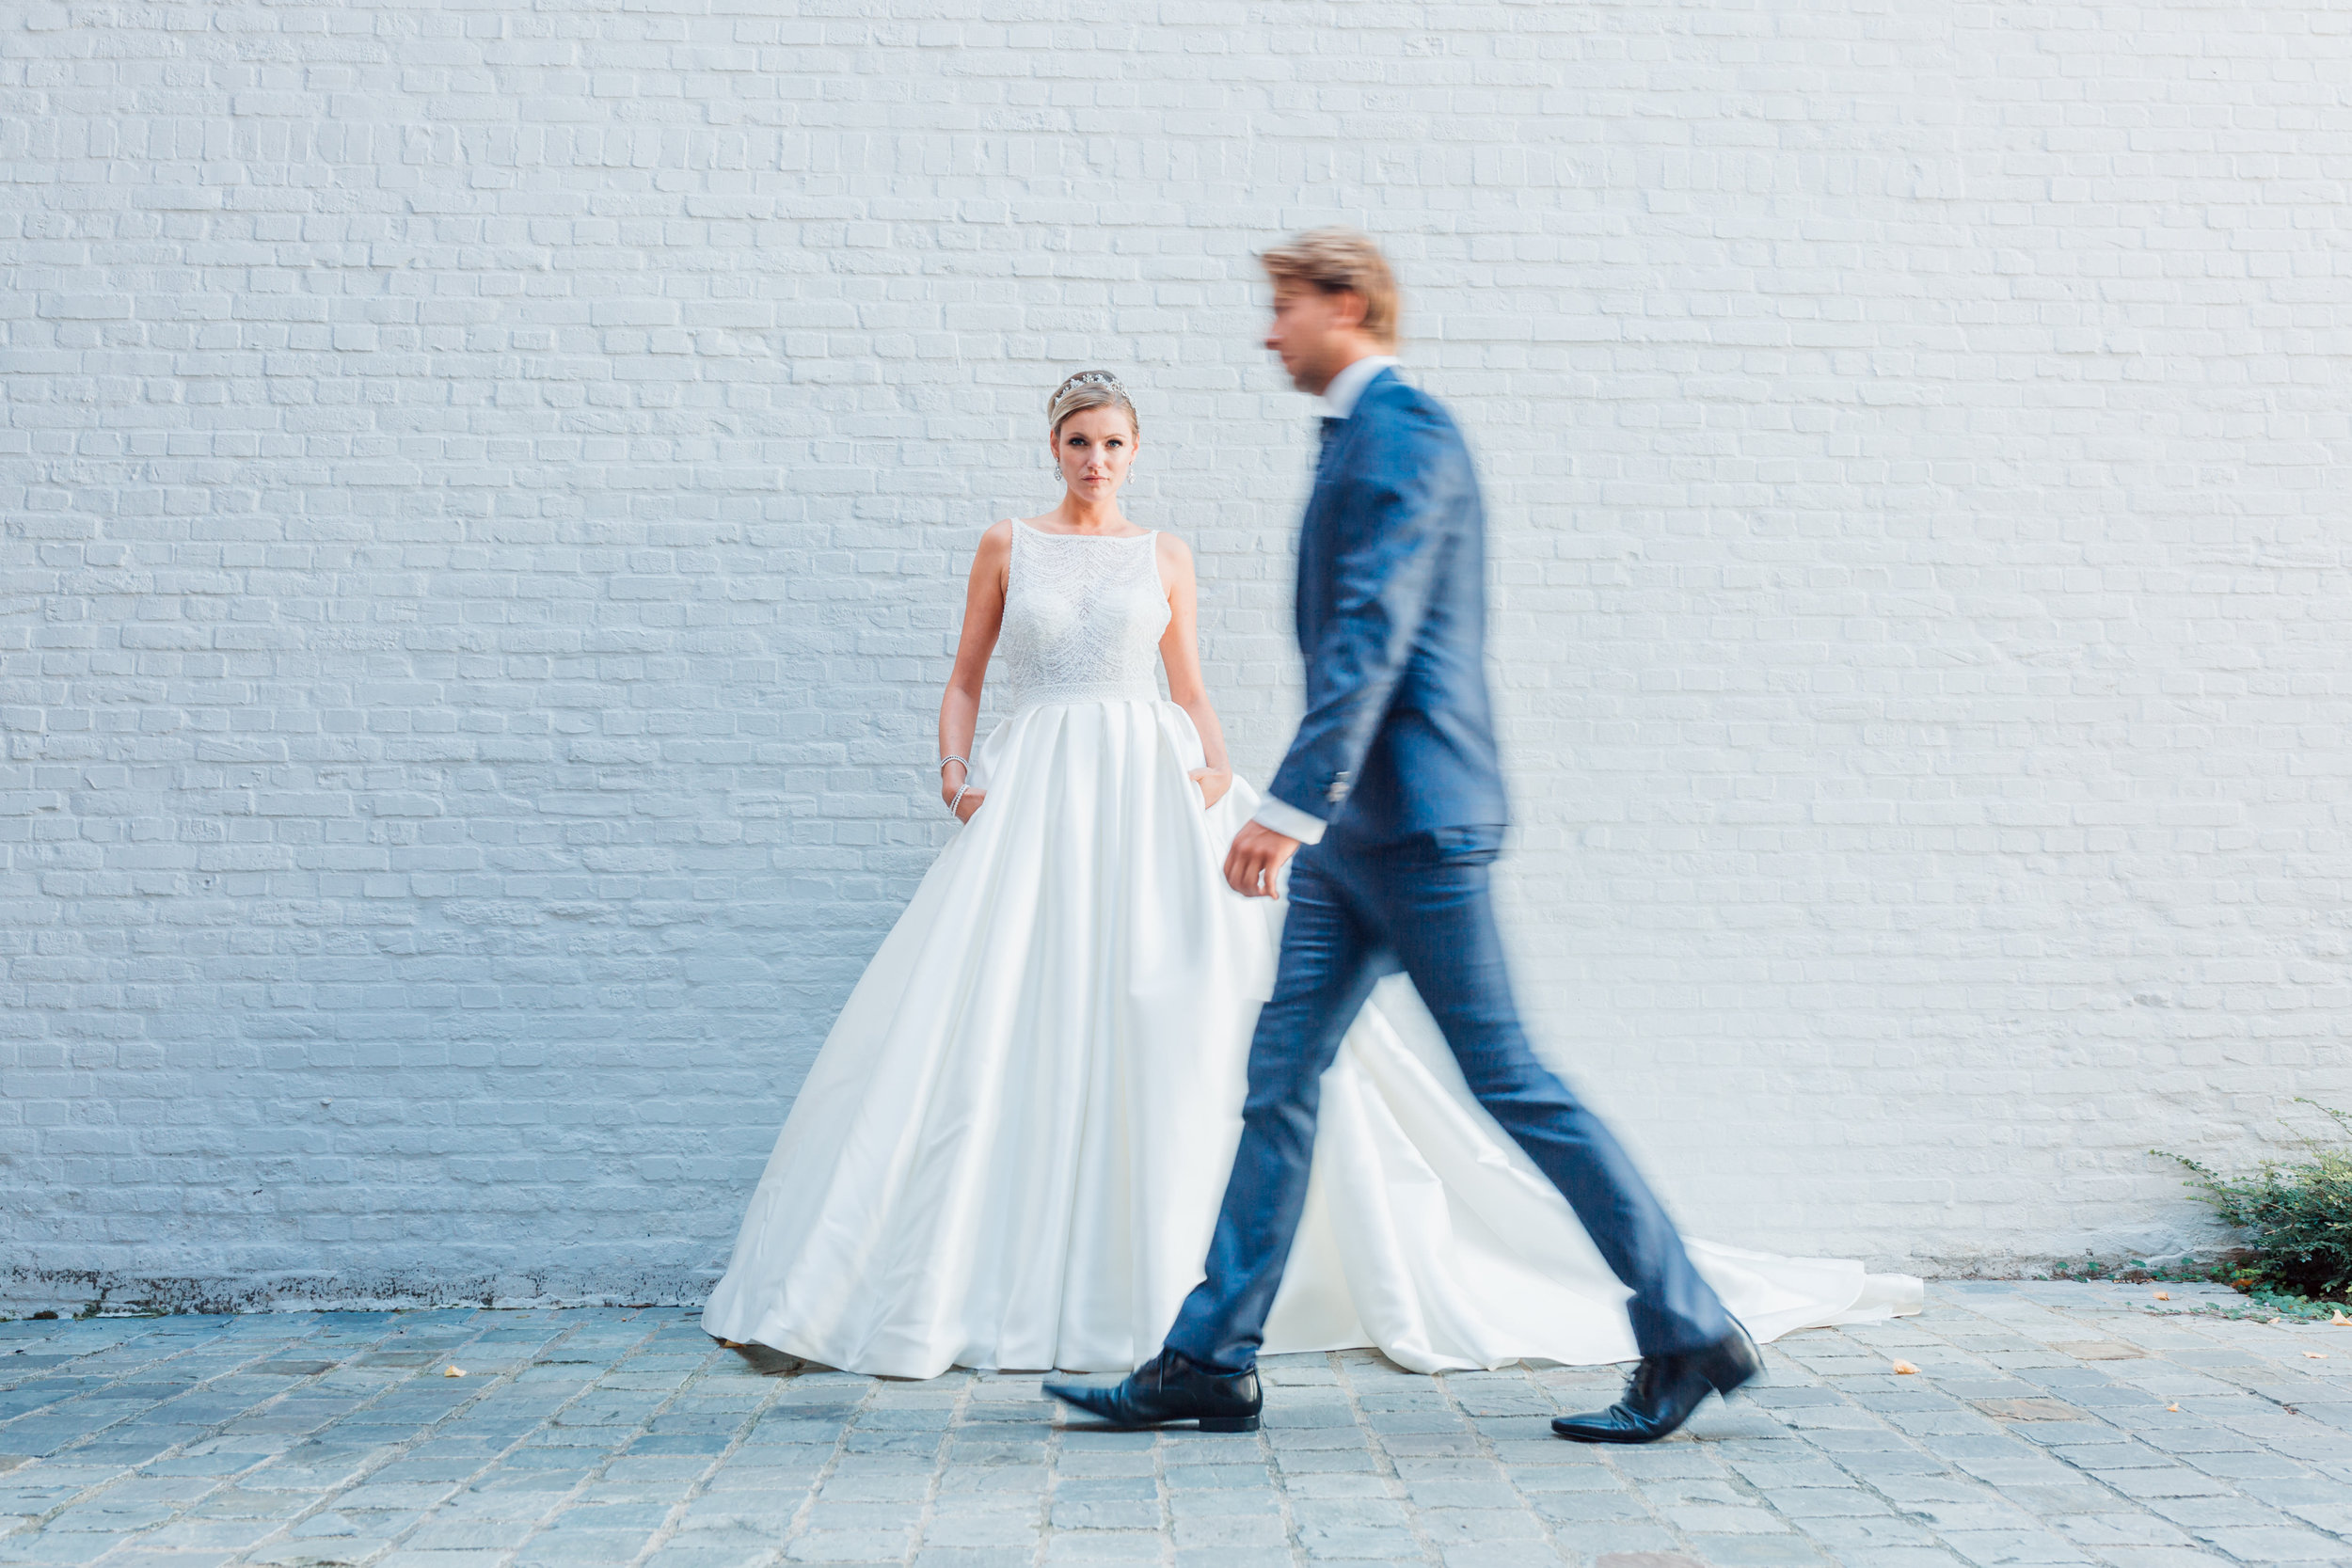 Lien & Marcel - Styled shoot voor Linx Fashion - 15 september 2019